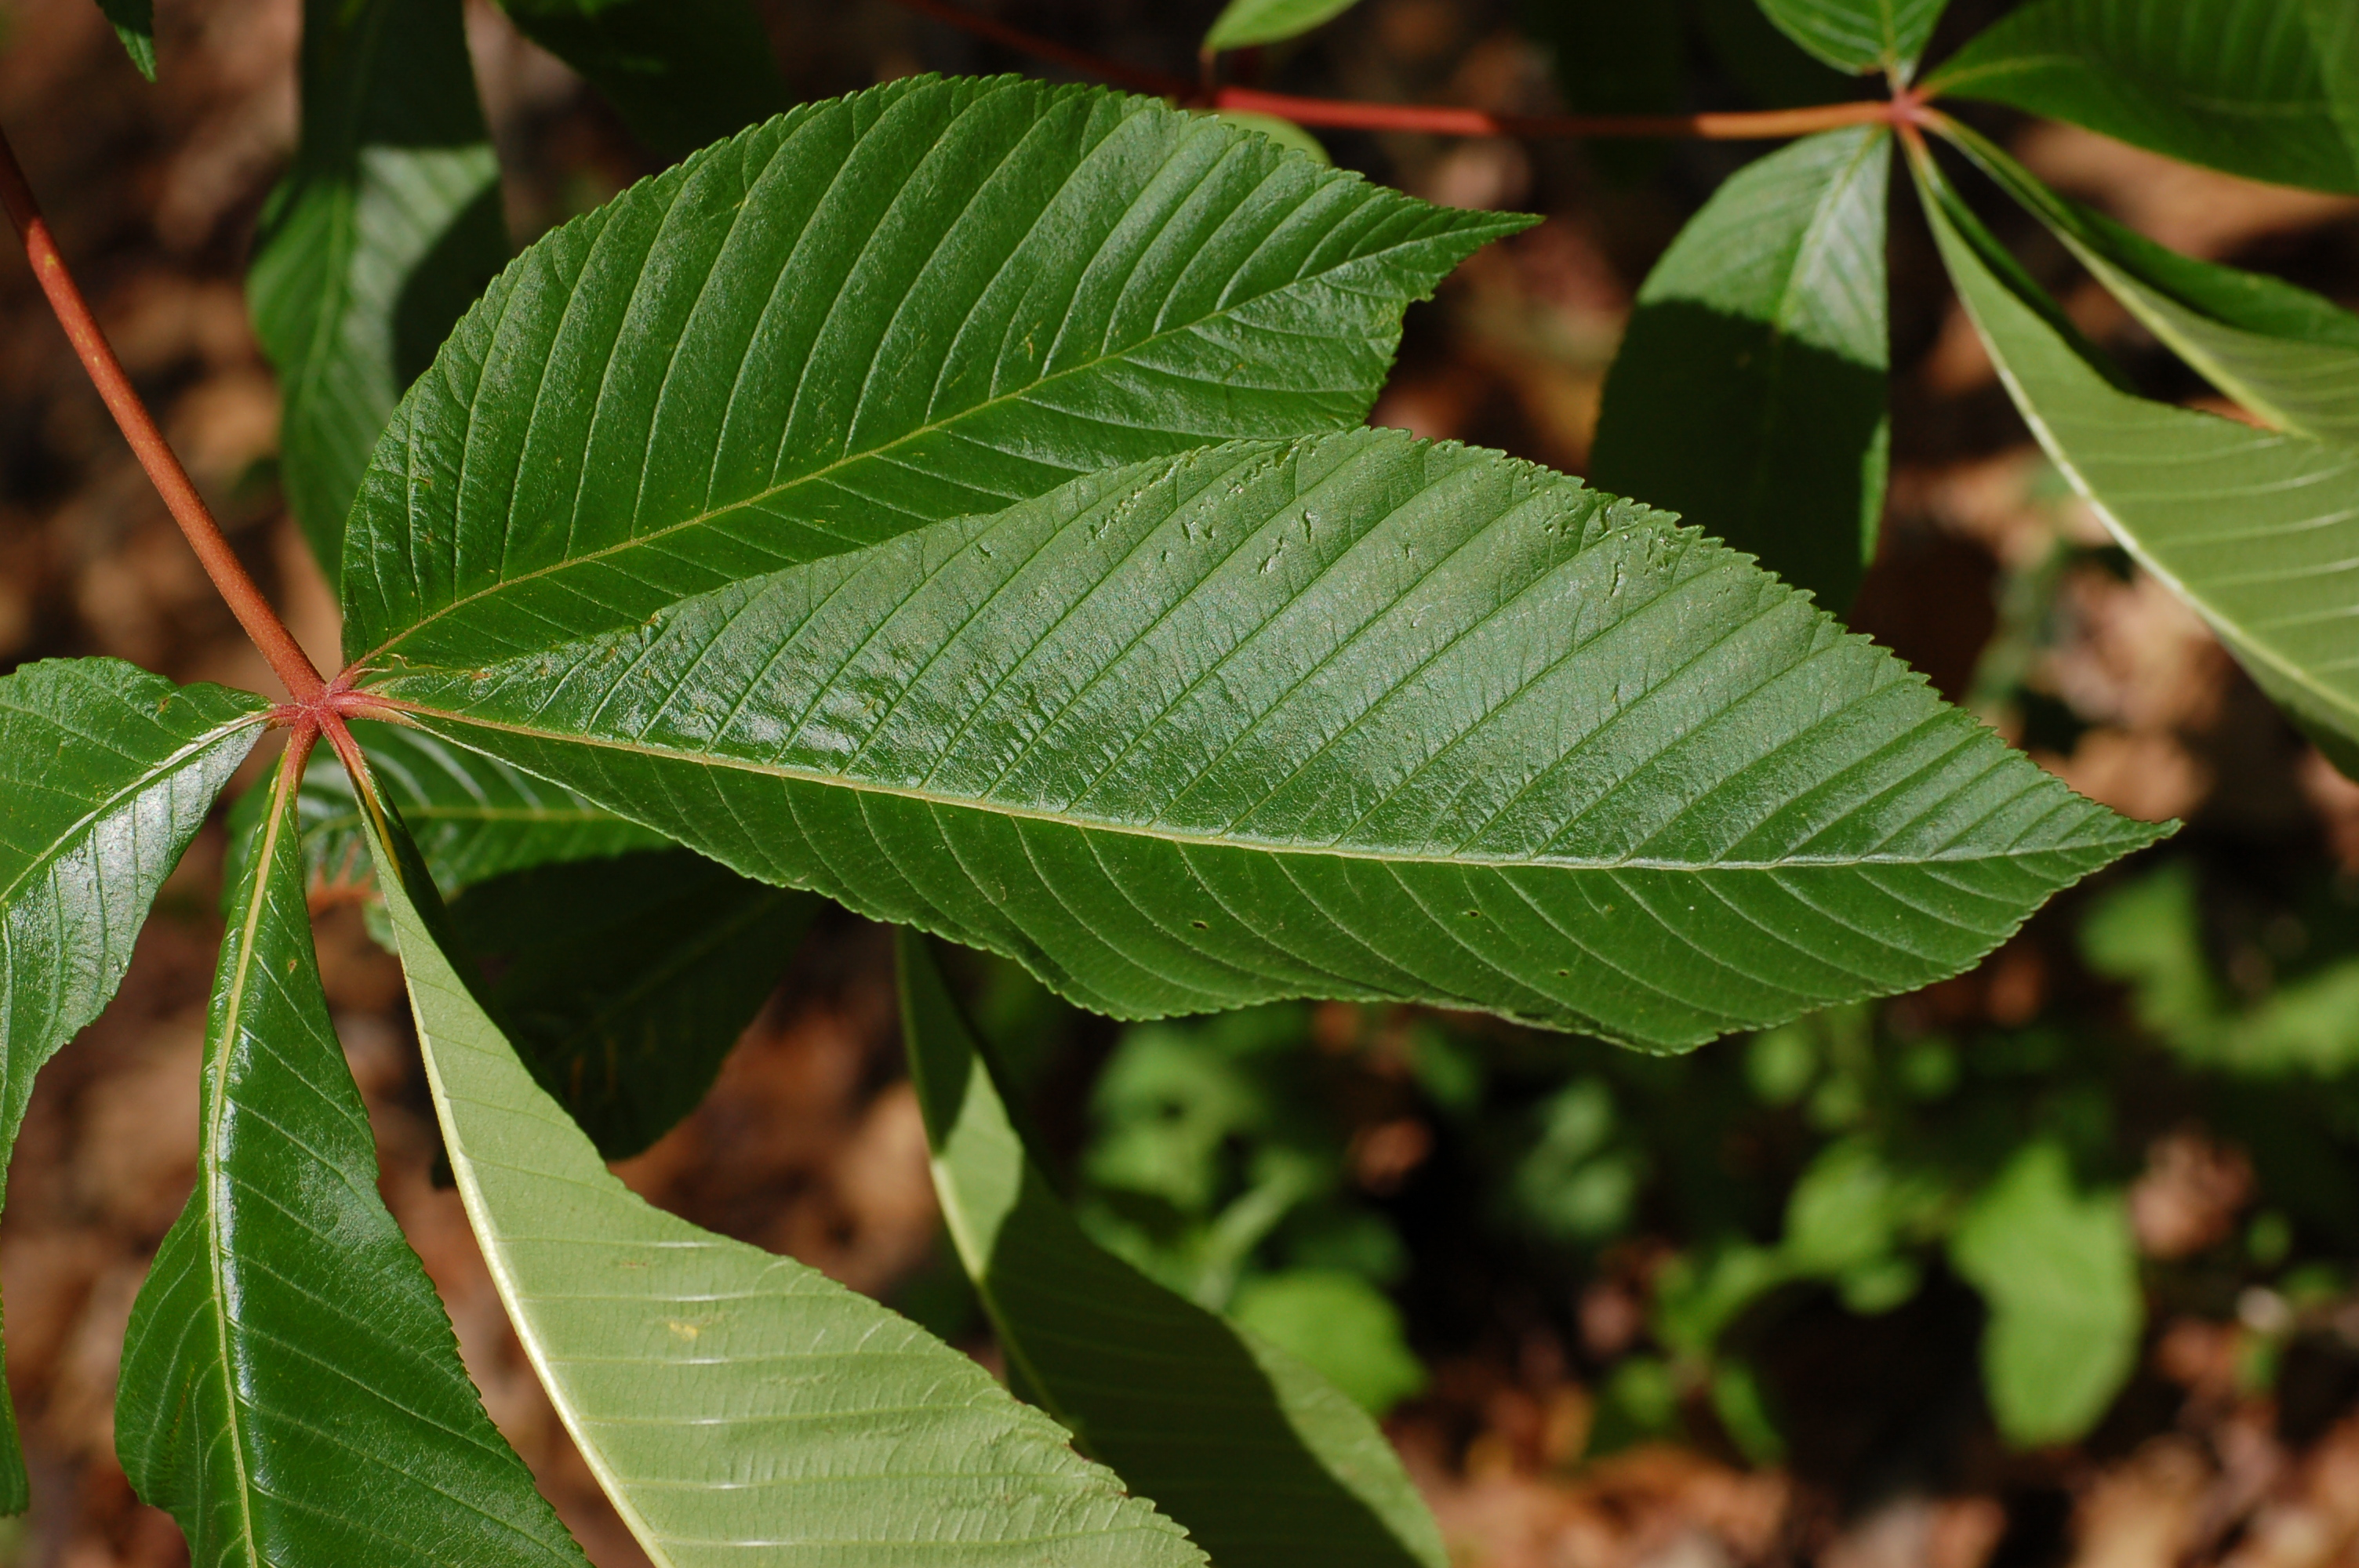 Image Result For Buckeye Leaf Pictures